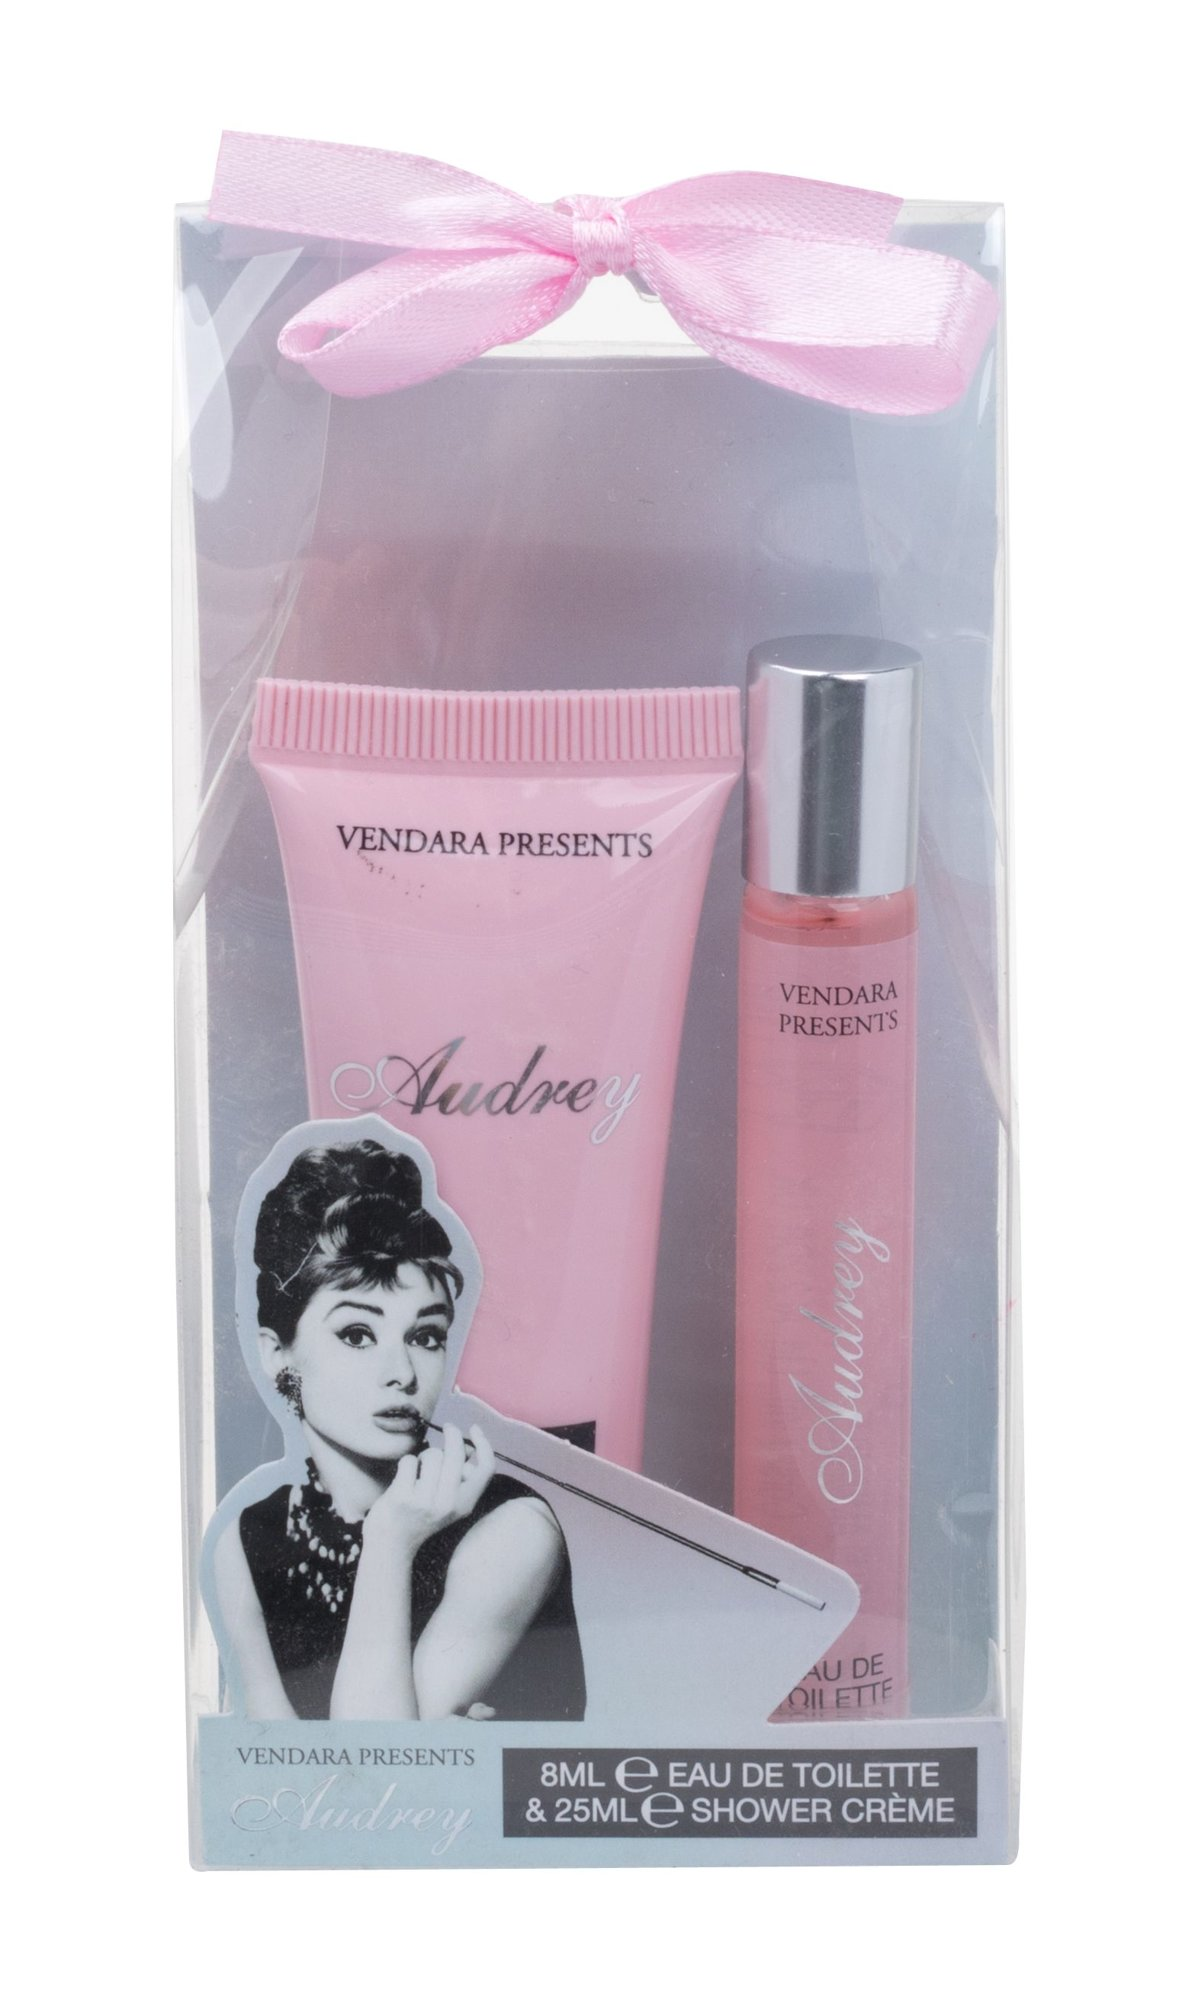 Vendara Presents Audrey EDT 8ml